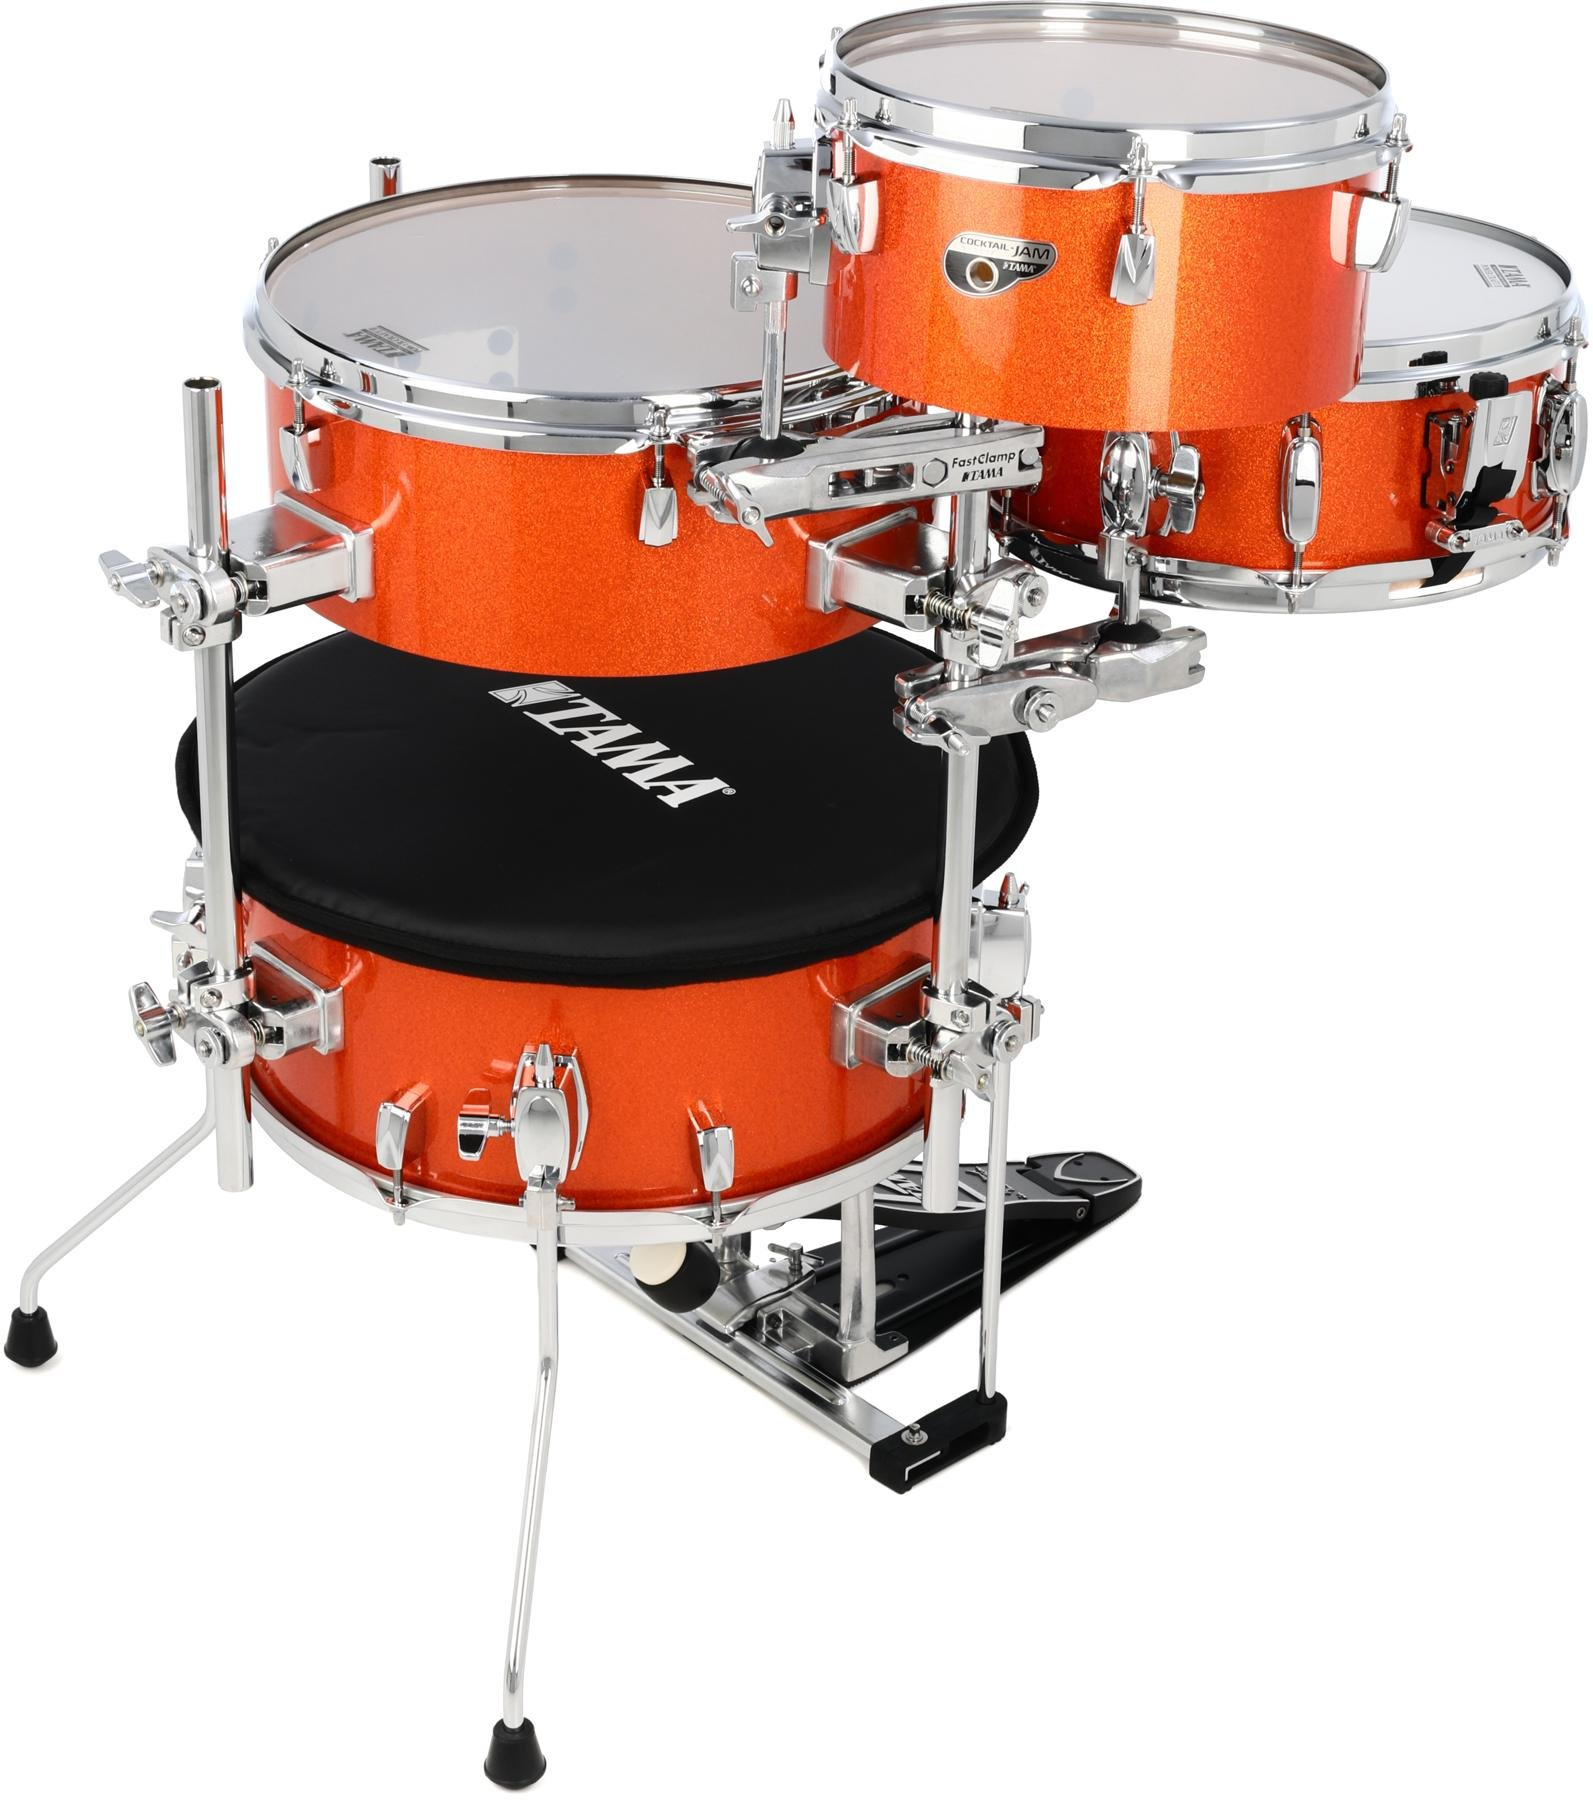 Tama Cocktail Jam 4 Piece Shell Pack With Hardware Bright Orange Mix Your Using A Keyboard Sparkle Image 1